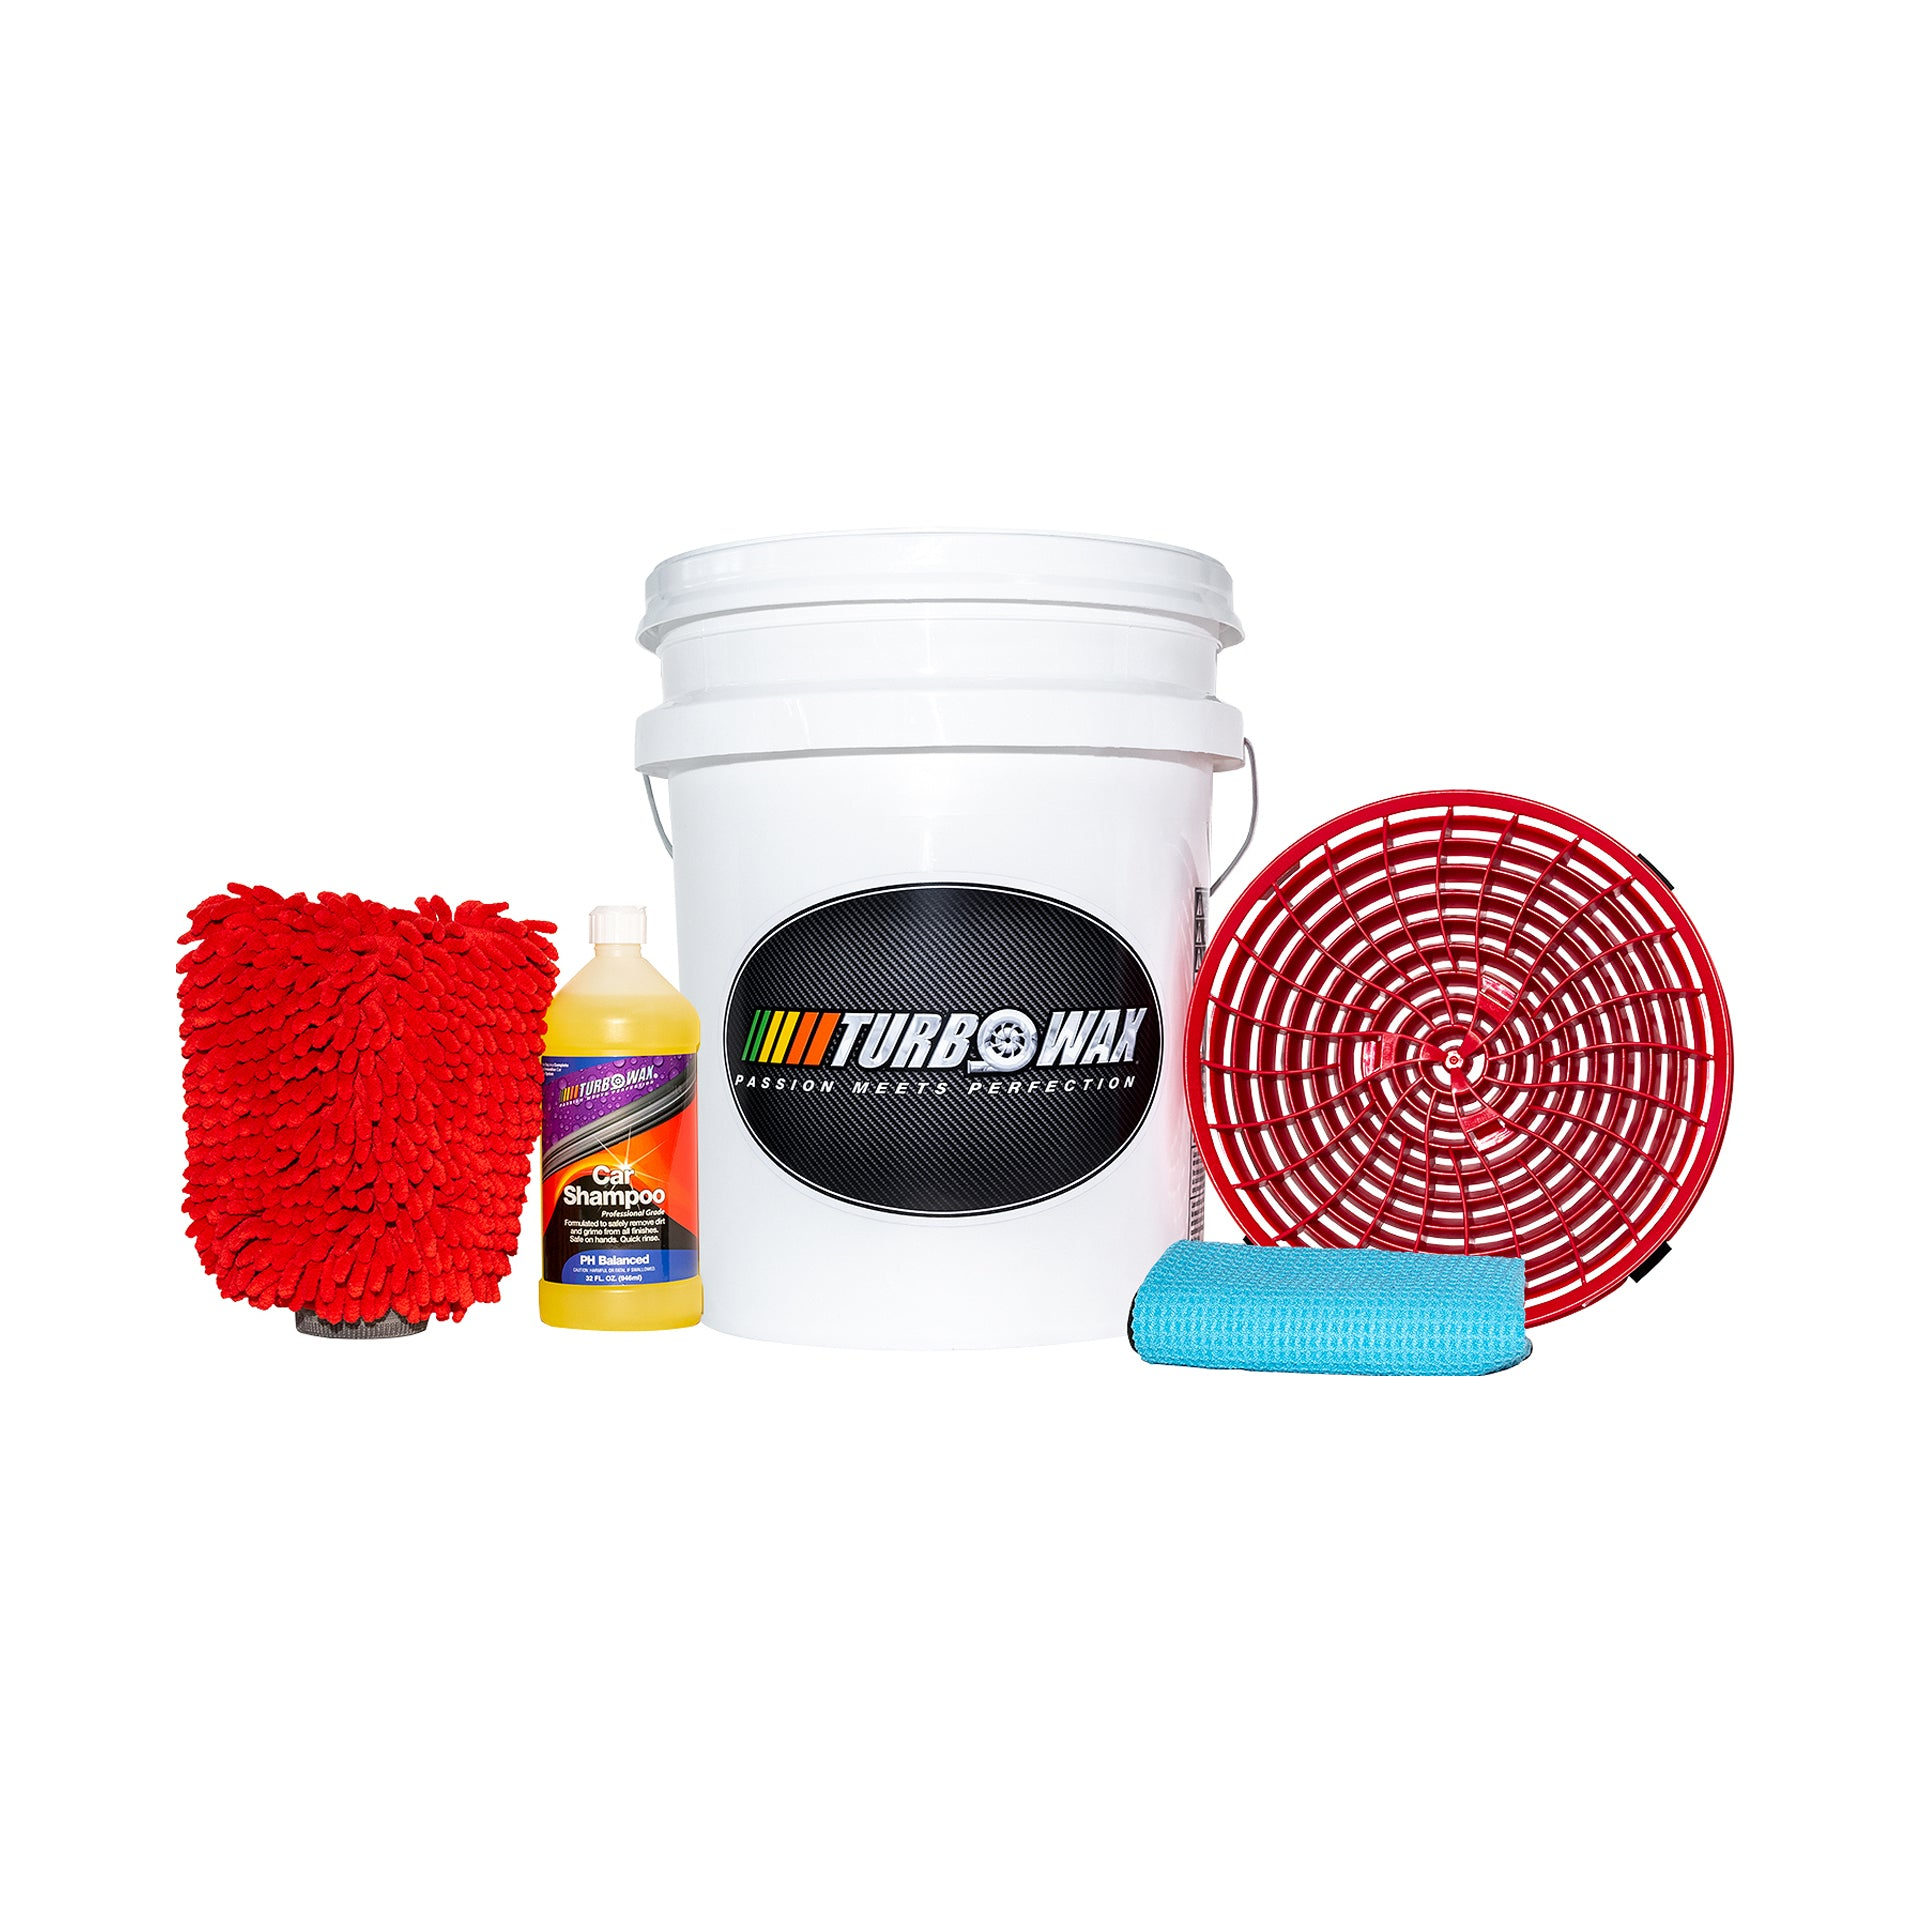 Turbo Wax Washing Bucket Combo - Turbo Wax Store